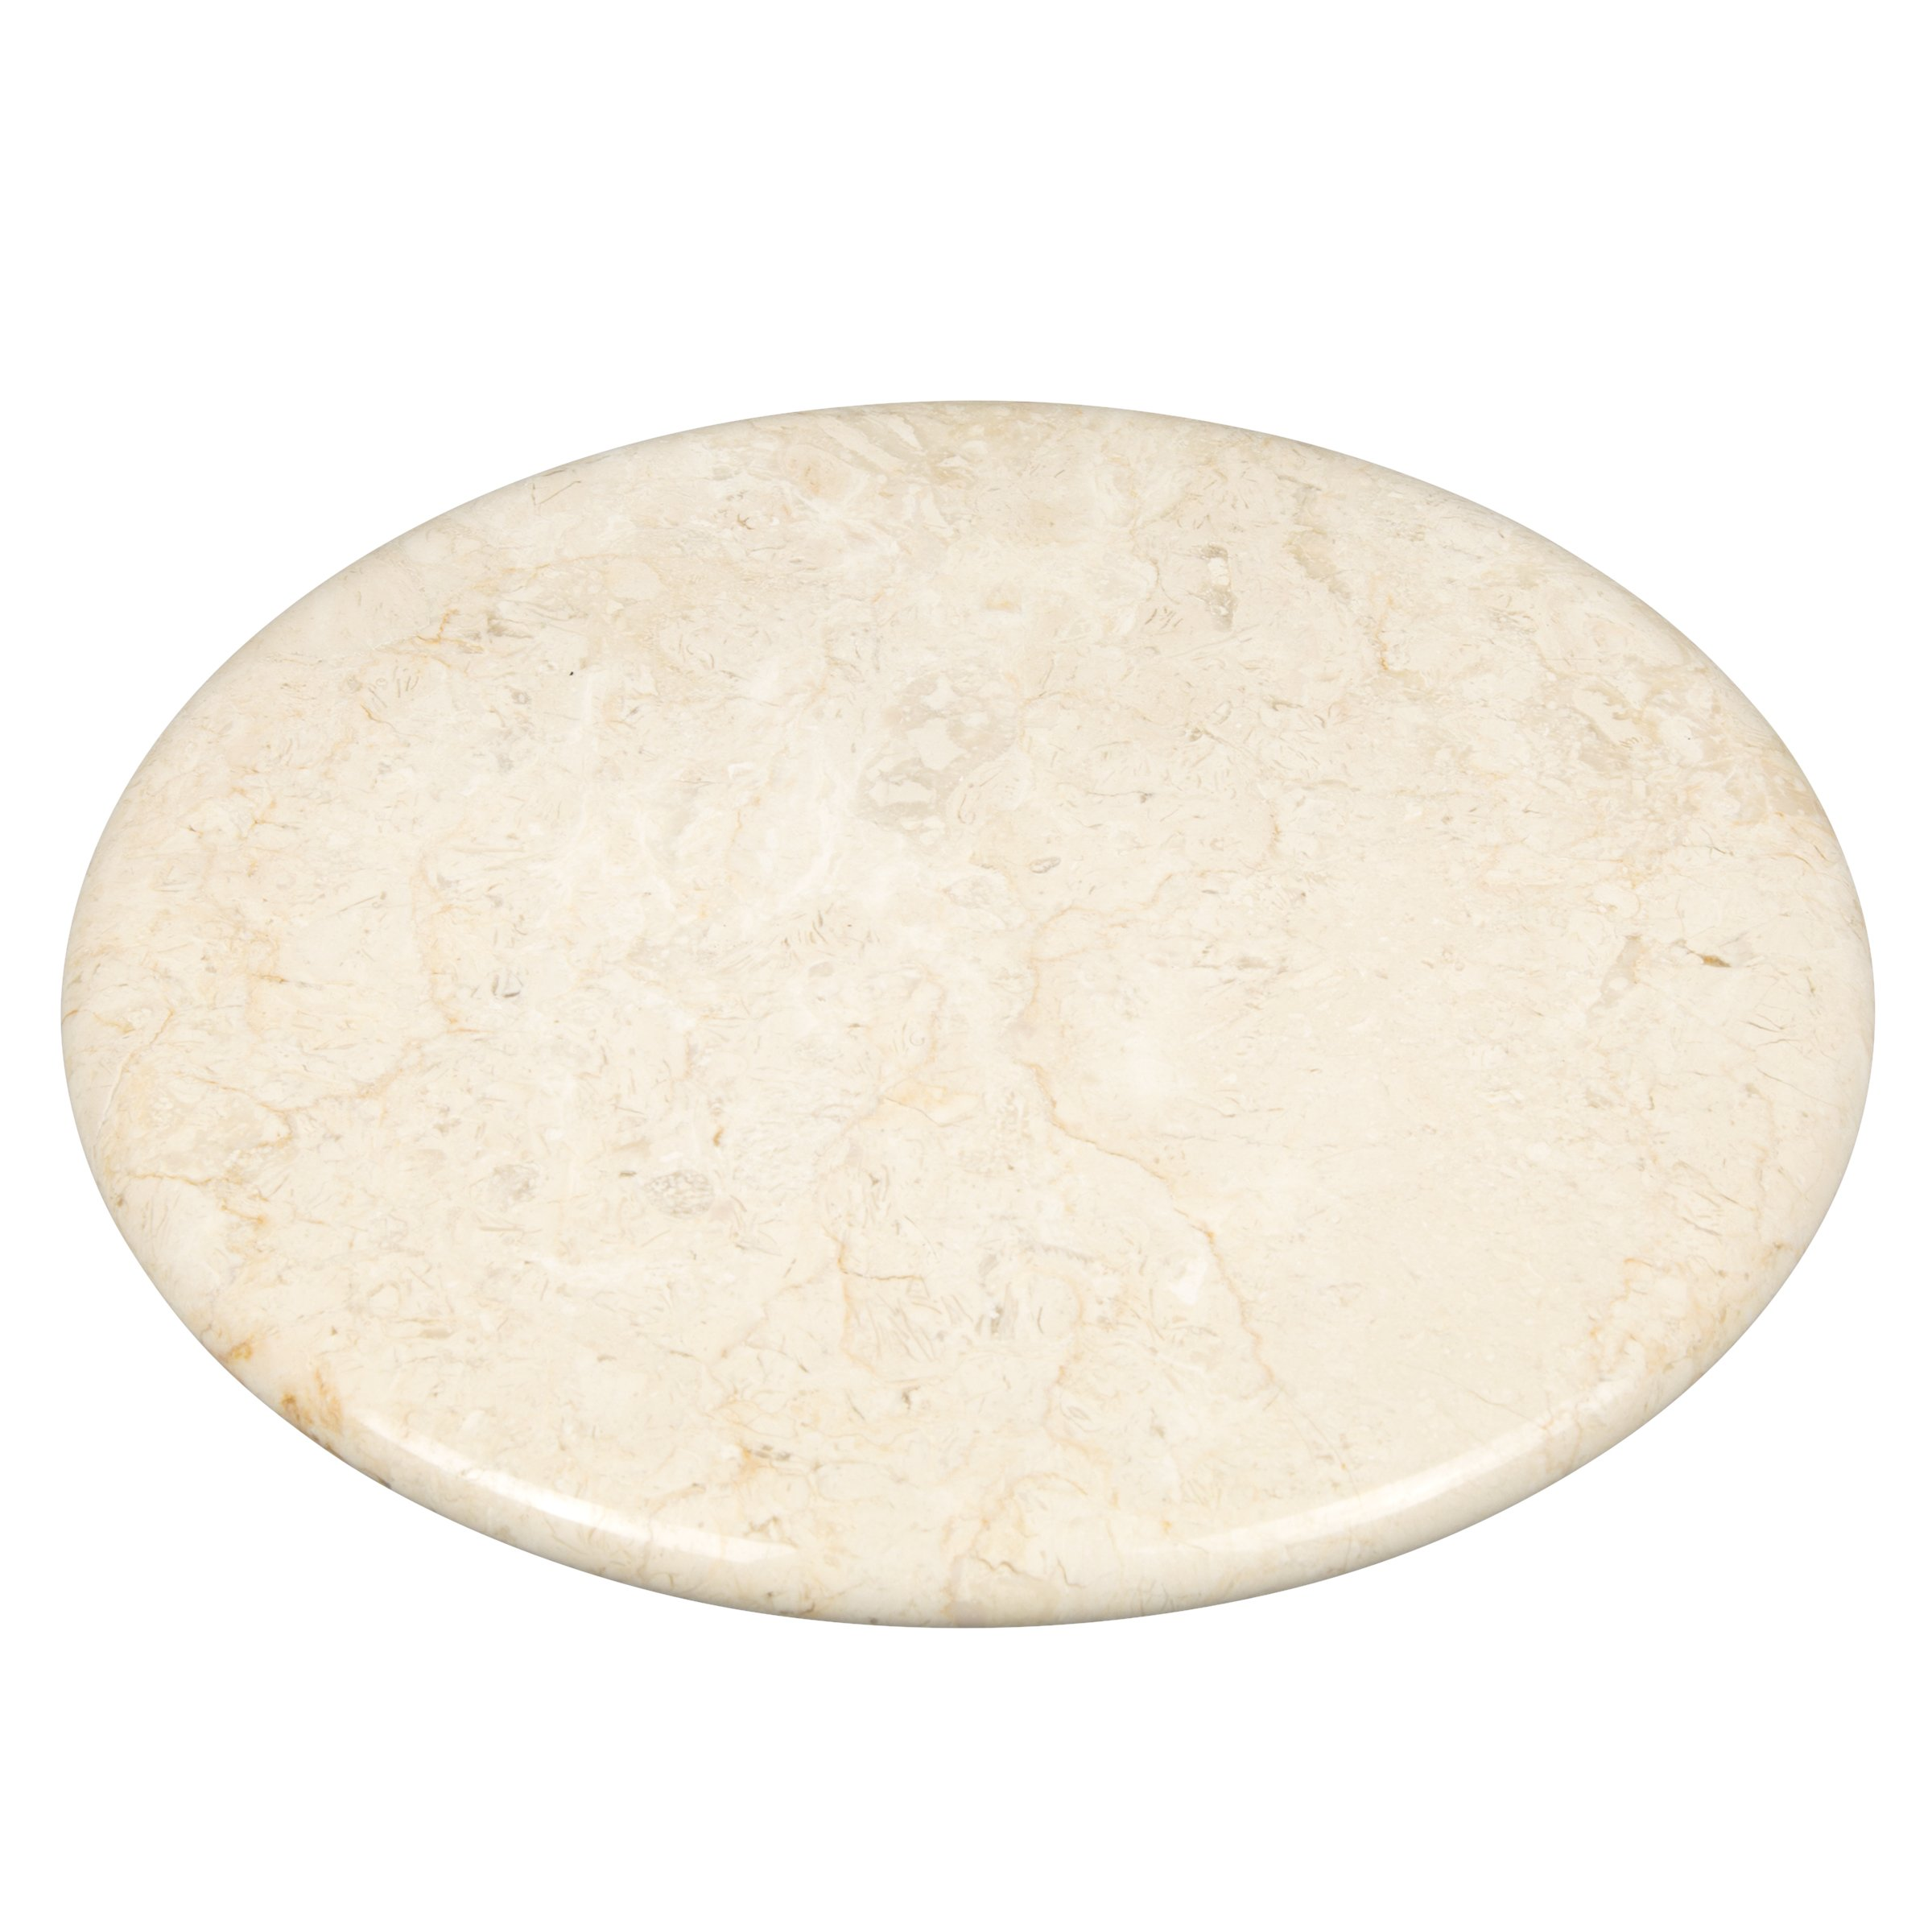 Creative Home Natural Stone Champagne Marble 12'' Round Board, Cheese Platter, Serving Tray